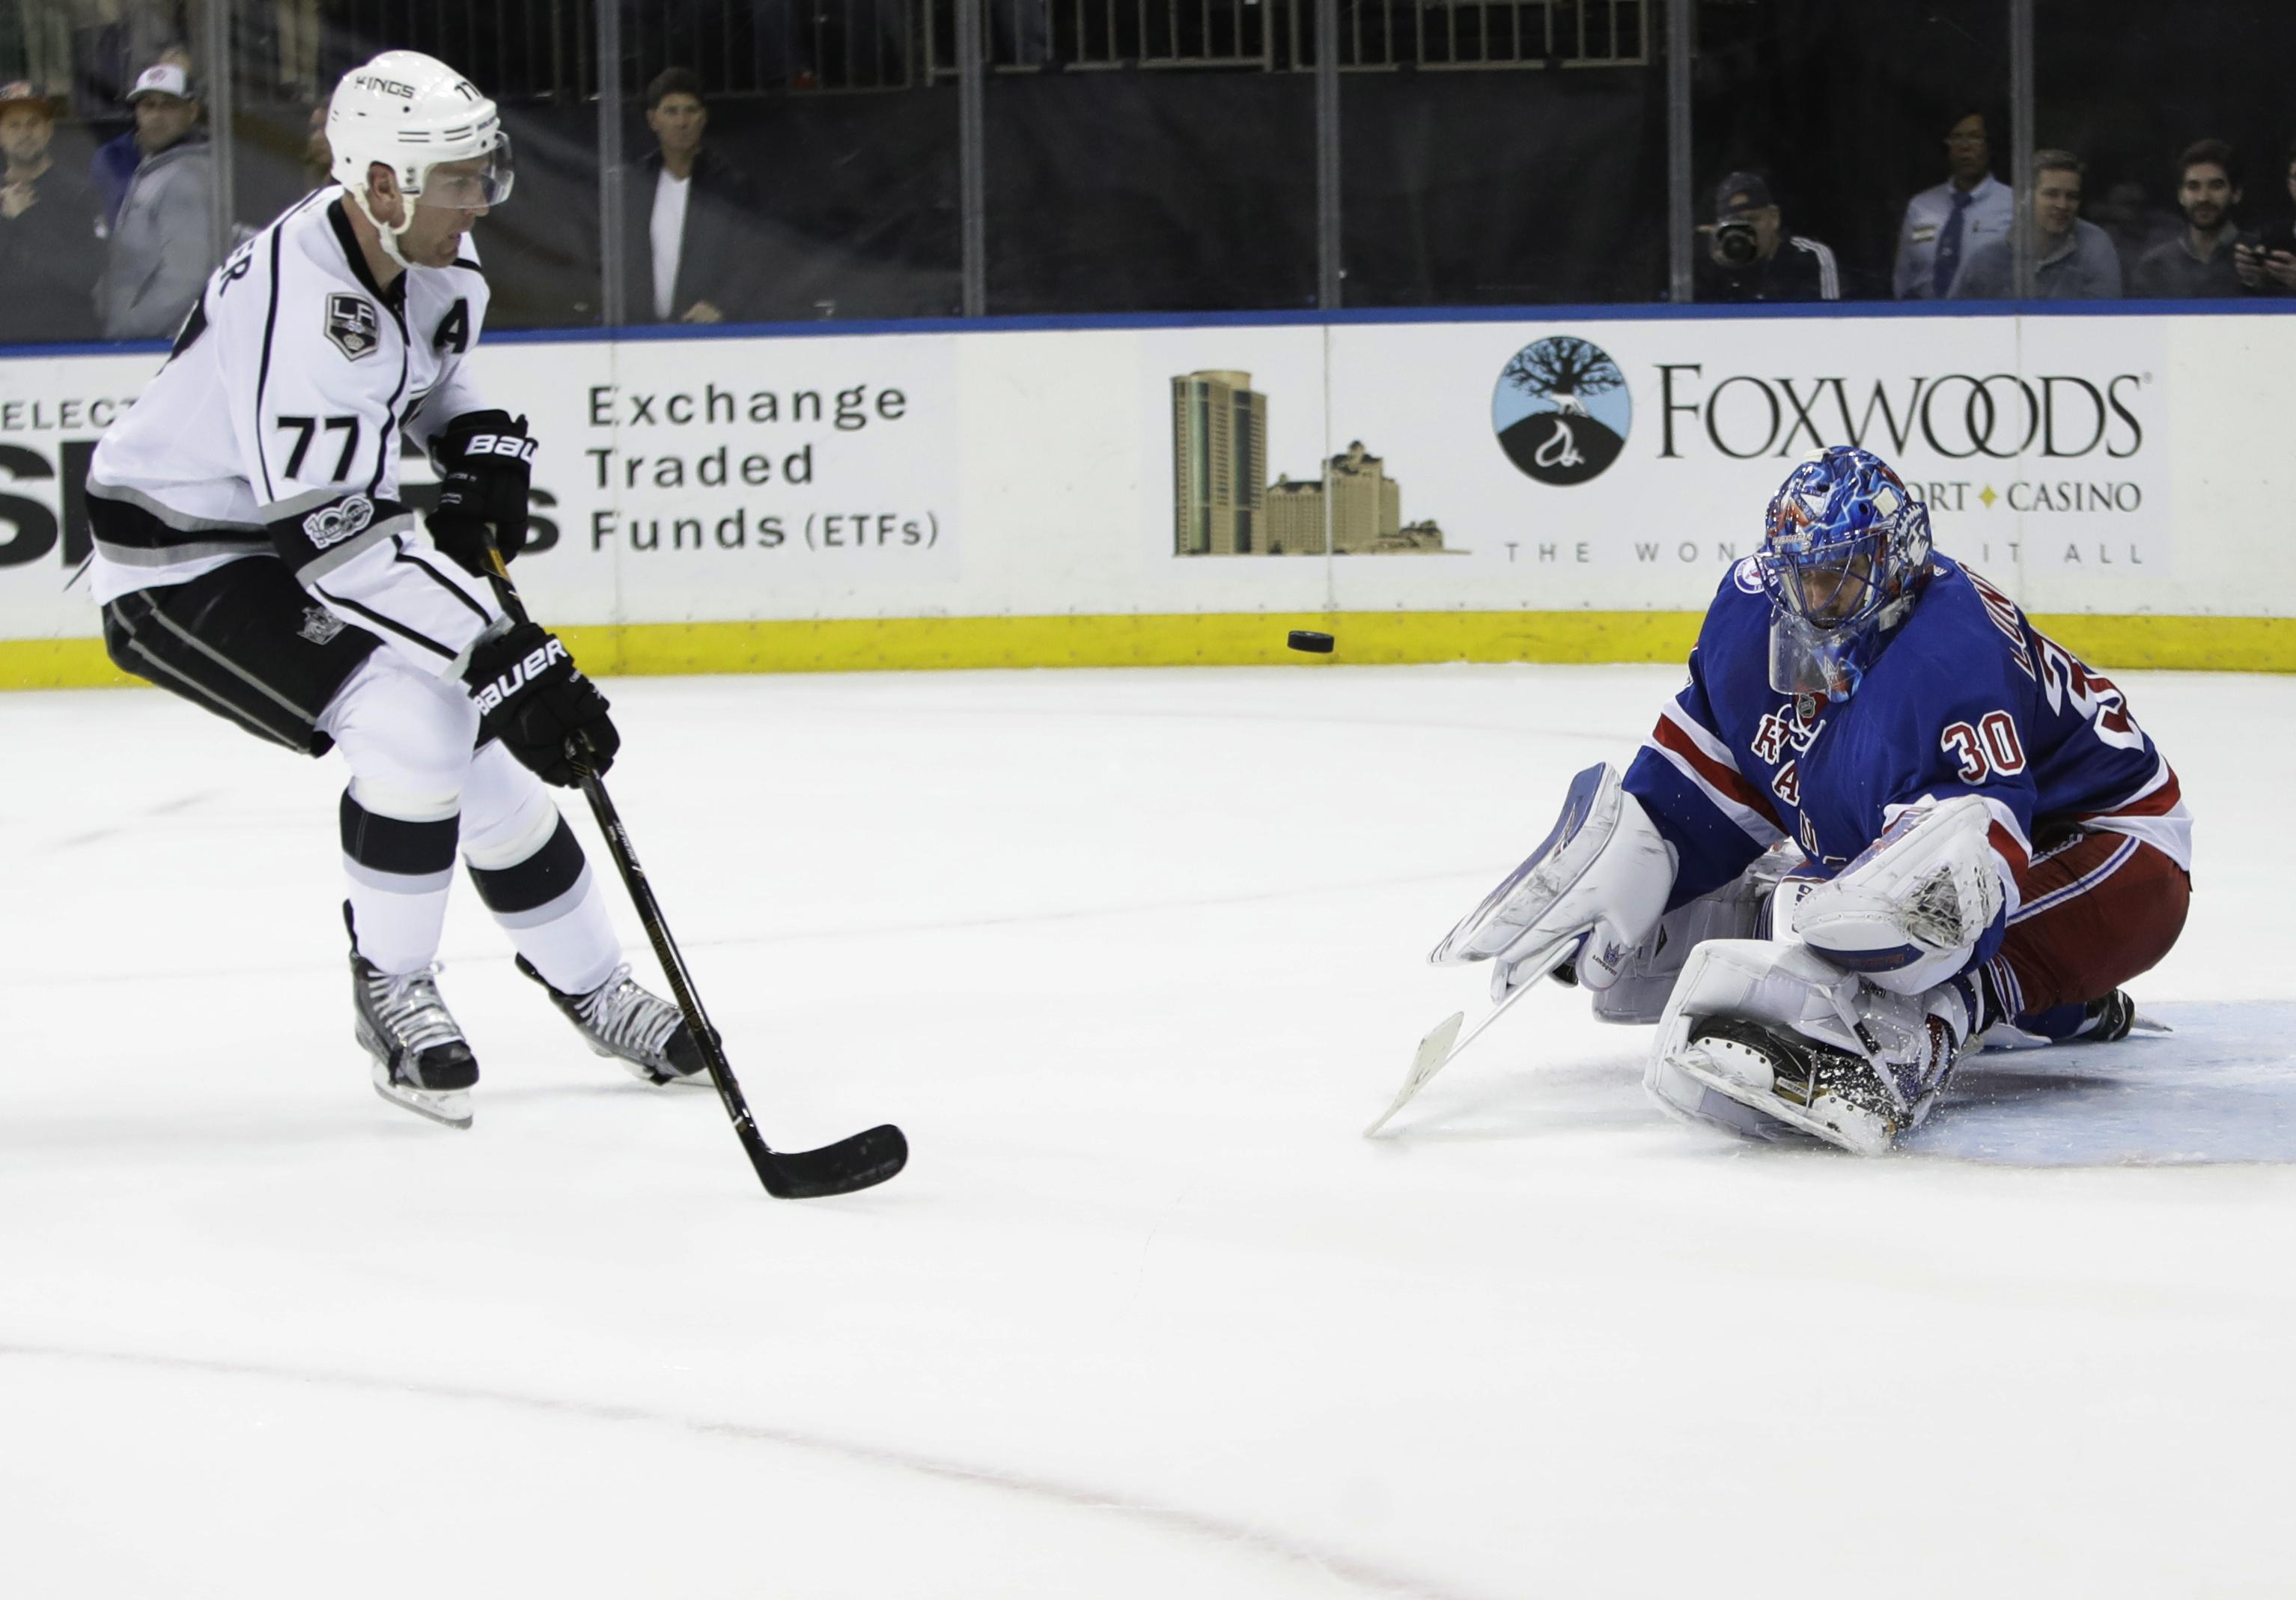 Kings_rangers_hockey_08990